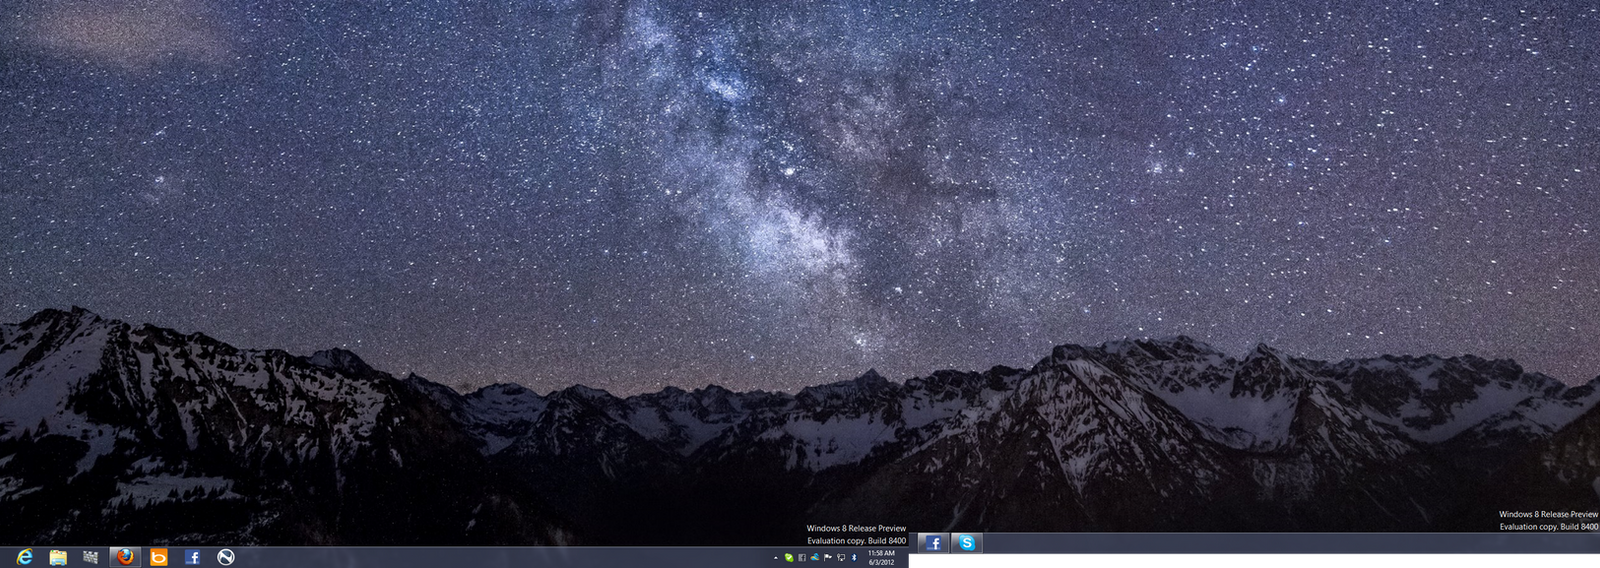 Windows 8 Release Preview Desktop by GateFan